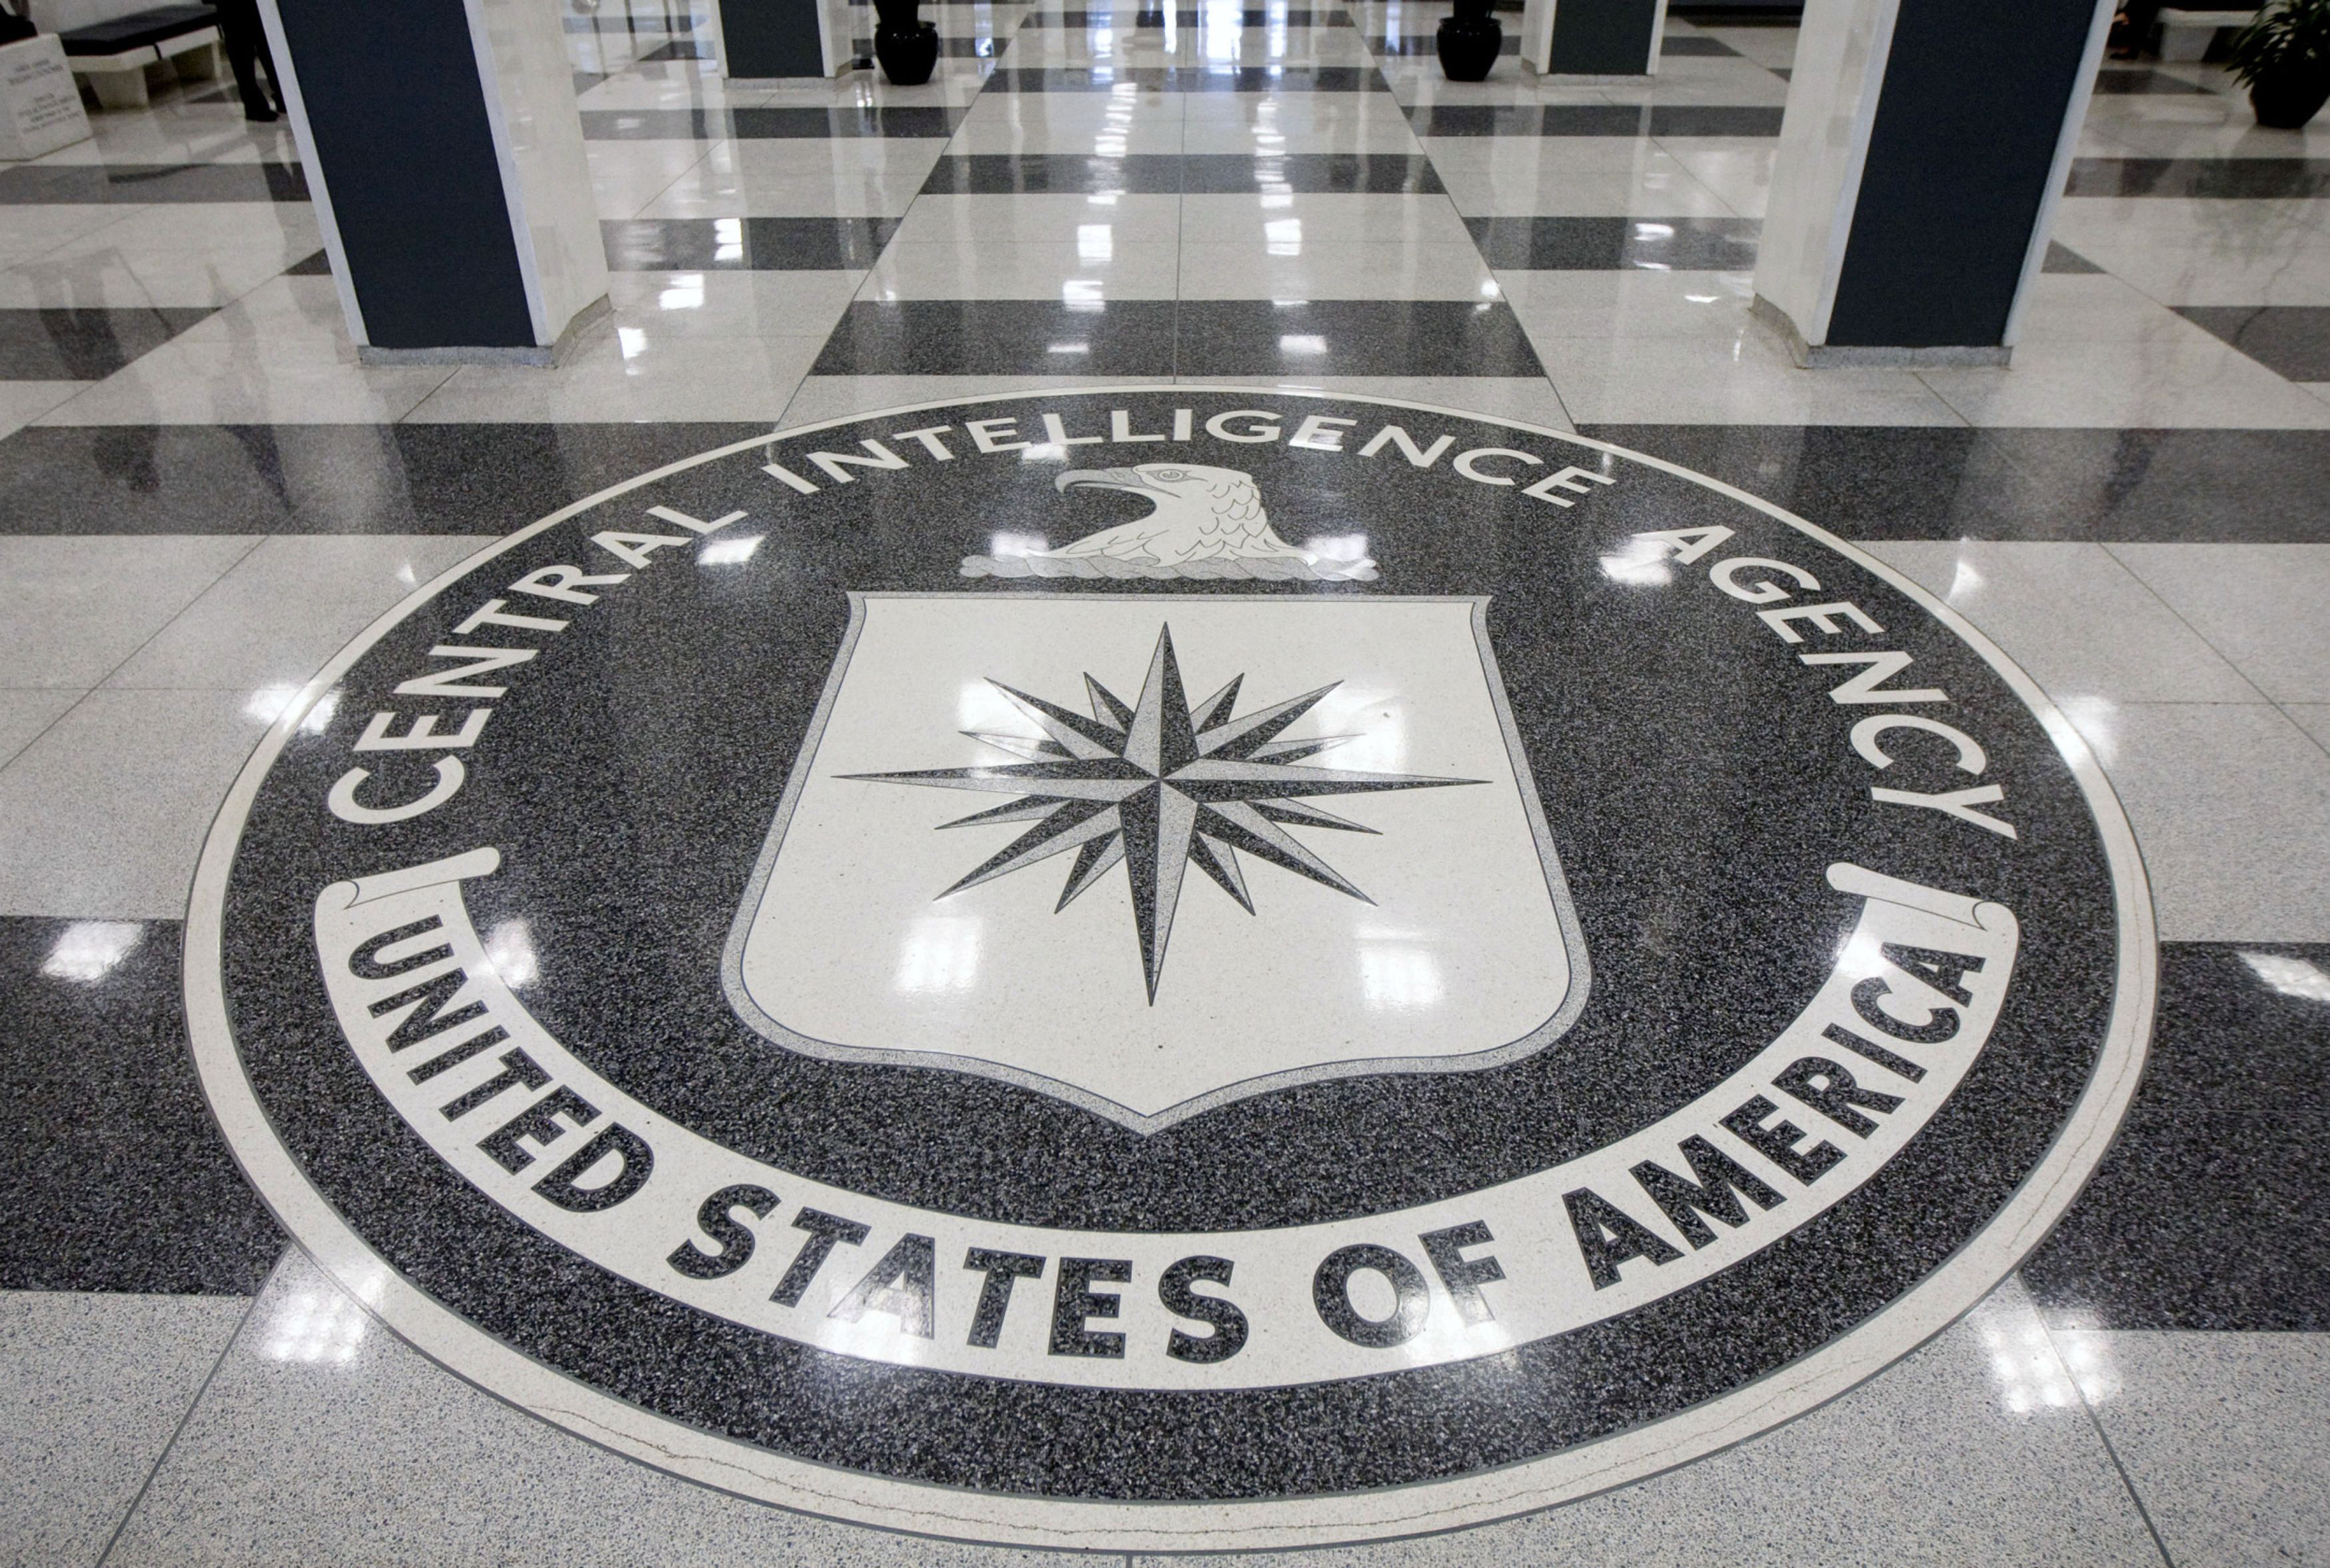 CIA's 'hip' rebrand panned and Facebook loses one of its fiercest advocates: Tuesday Wake-Up Call